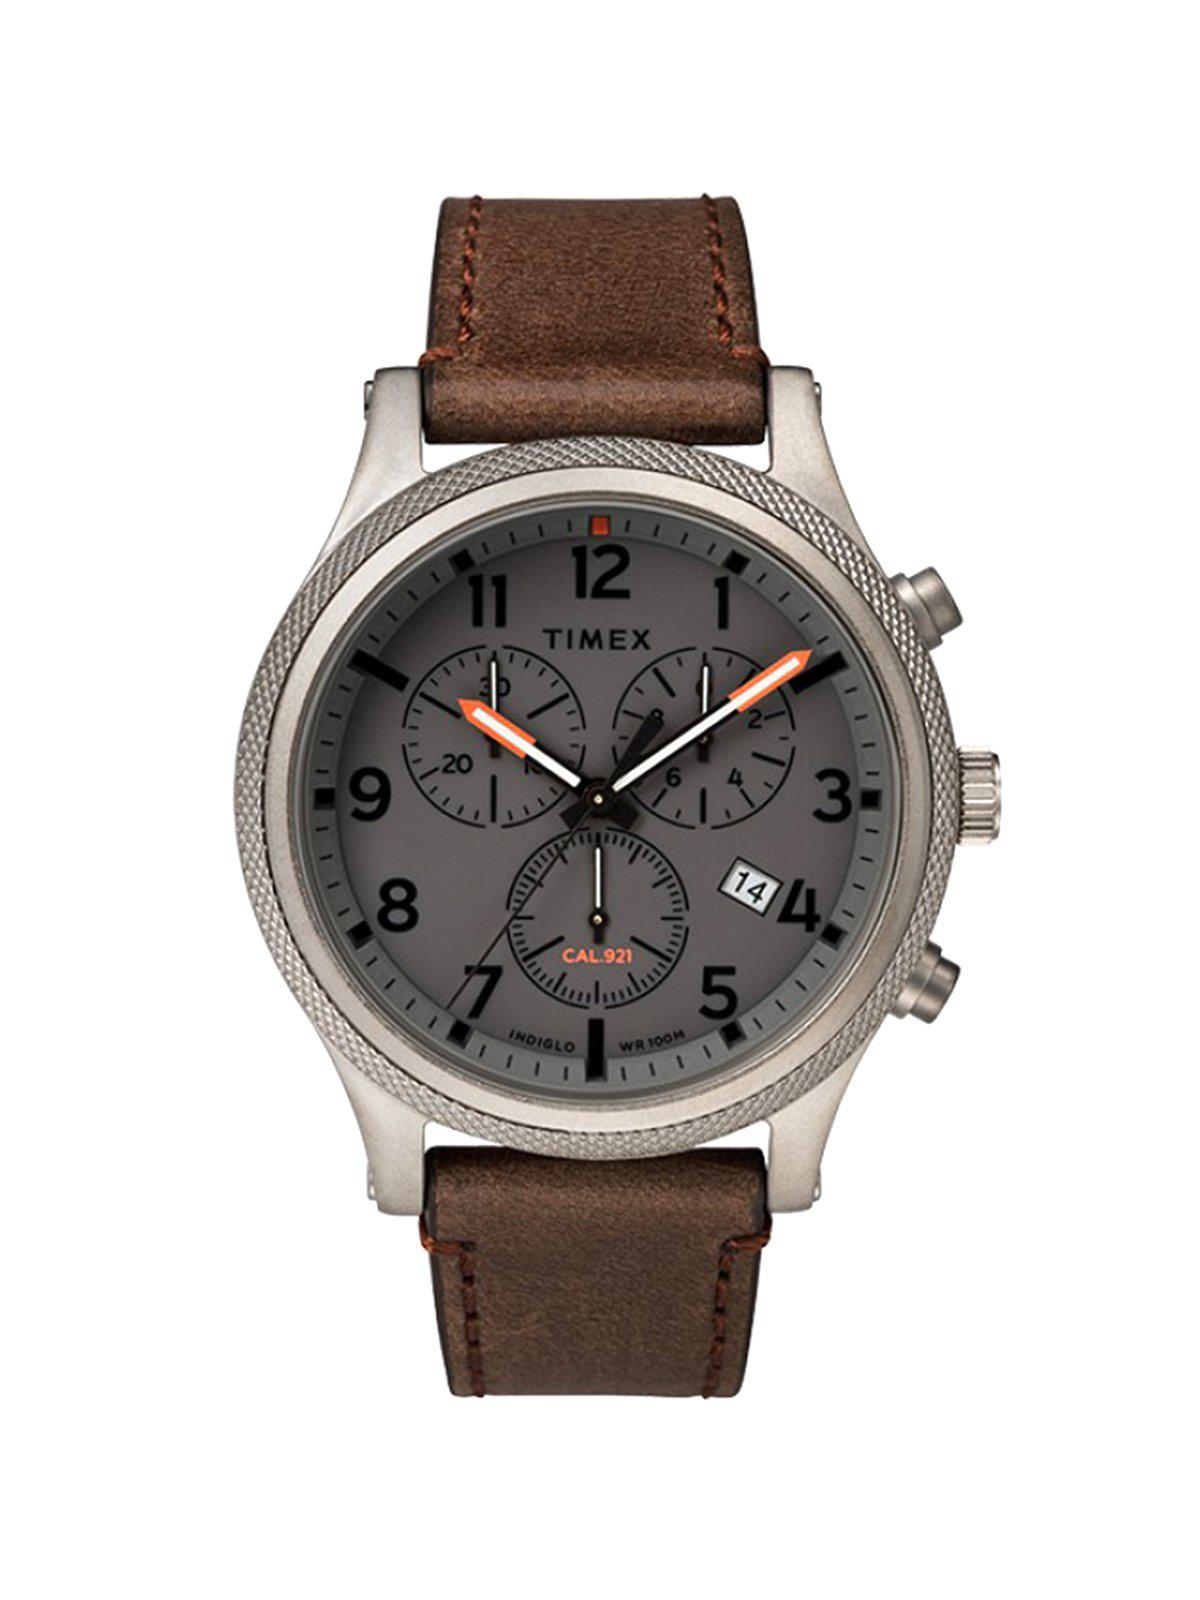 Timex Allied LT Chronograph TW2T32800 42mm Leather Strap Watch - MORE by Morello Indonesia